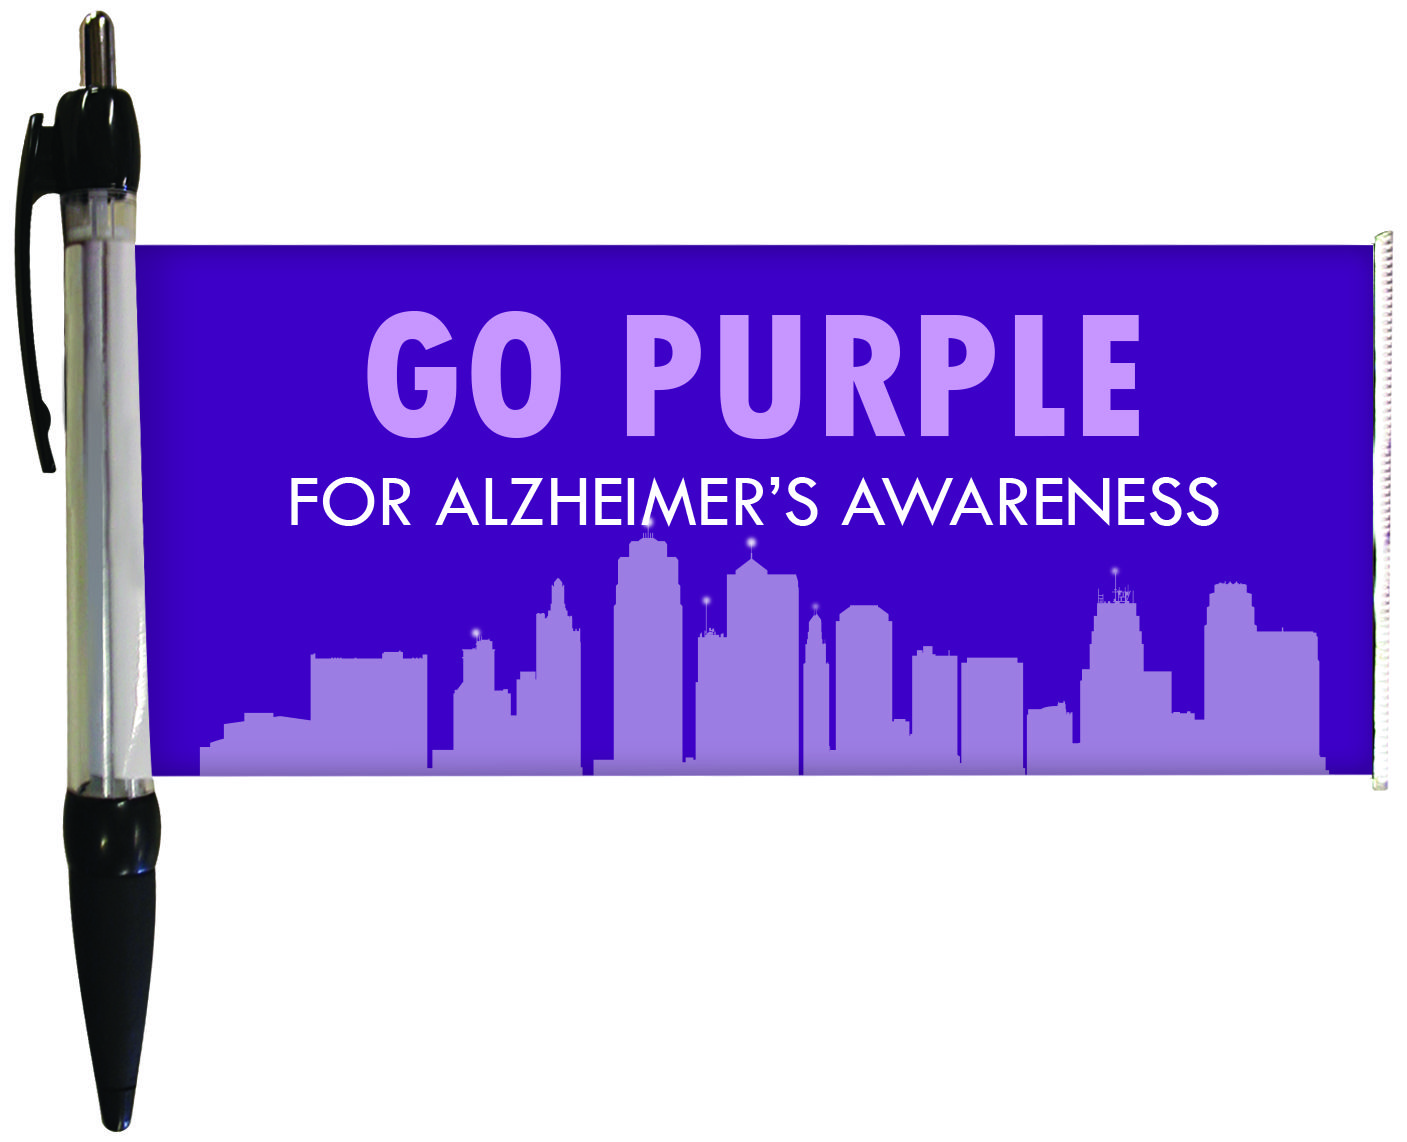 Pin By Quinn Flags On Healthcare Awareness Promotional Ideas Alzheimers Awareness Awareness Trade Show Display